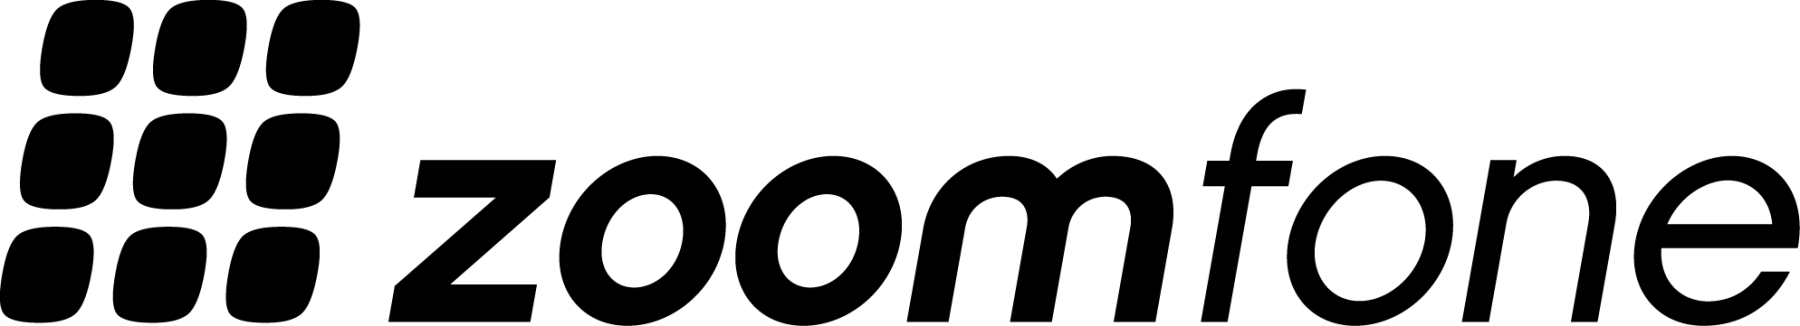 Zoomfone_Logo_Blk(1)-w1800.png